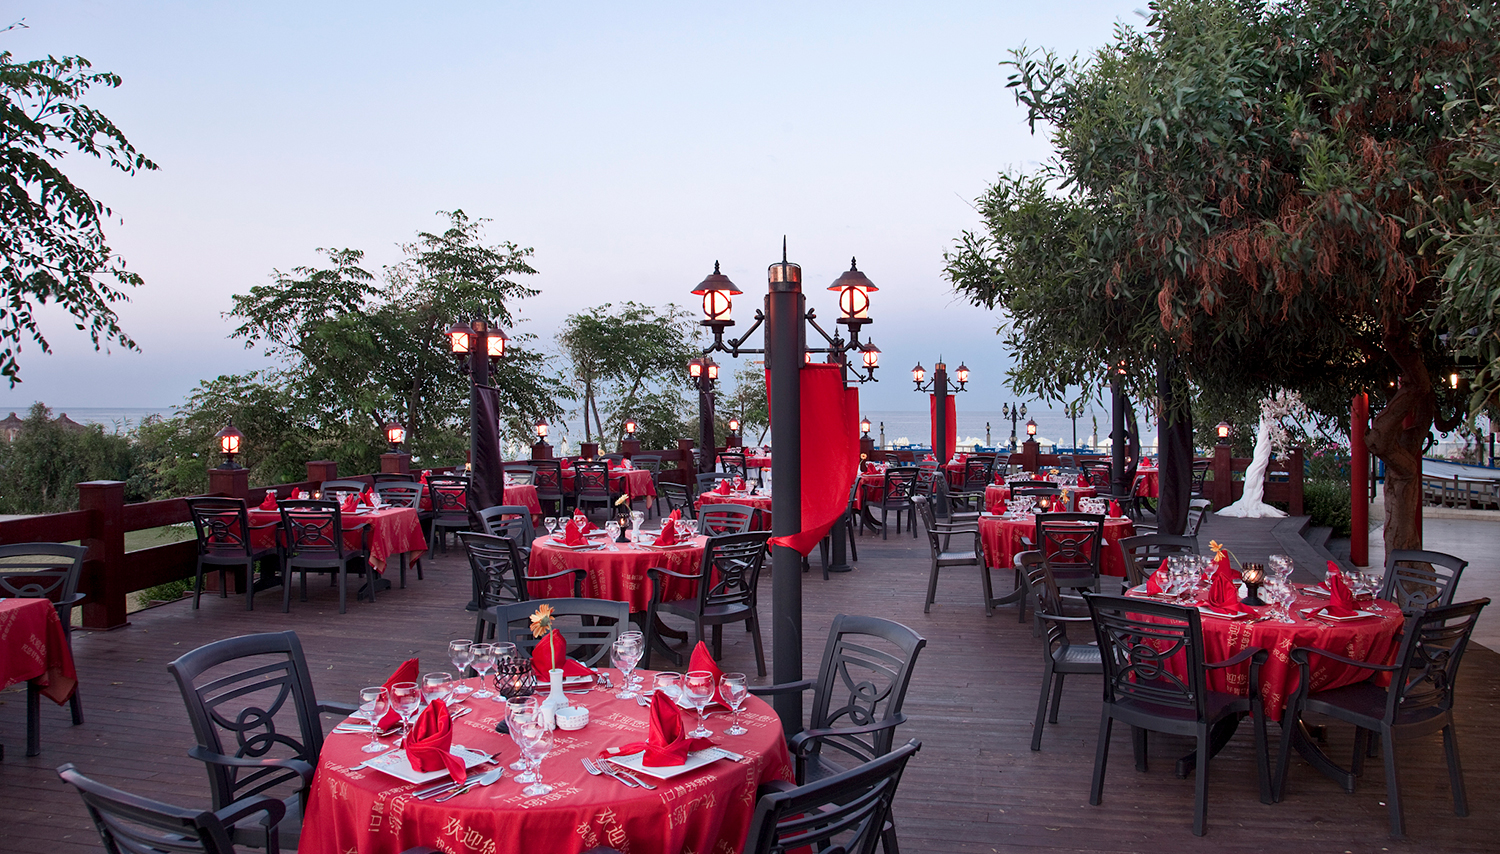 Sunrise Resort hotell (Antalya, Türgi)